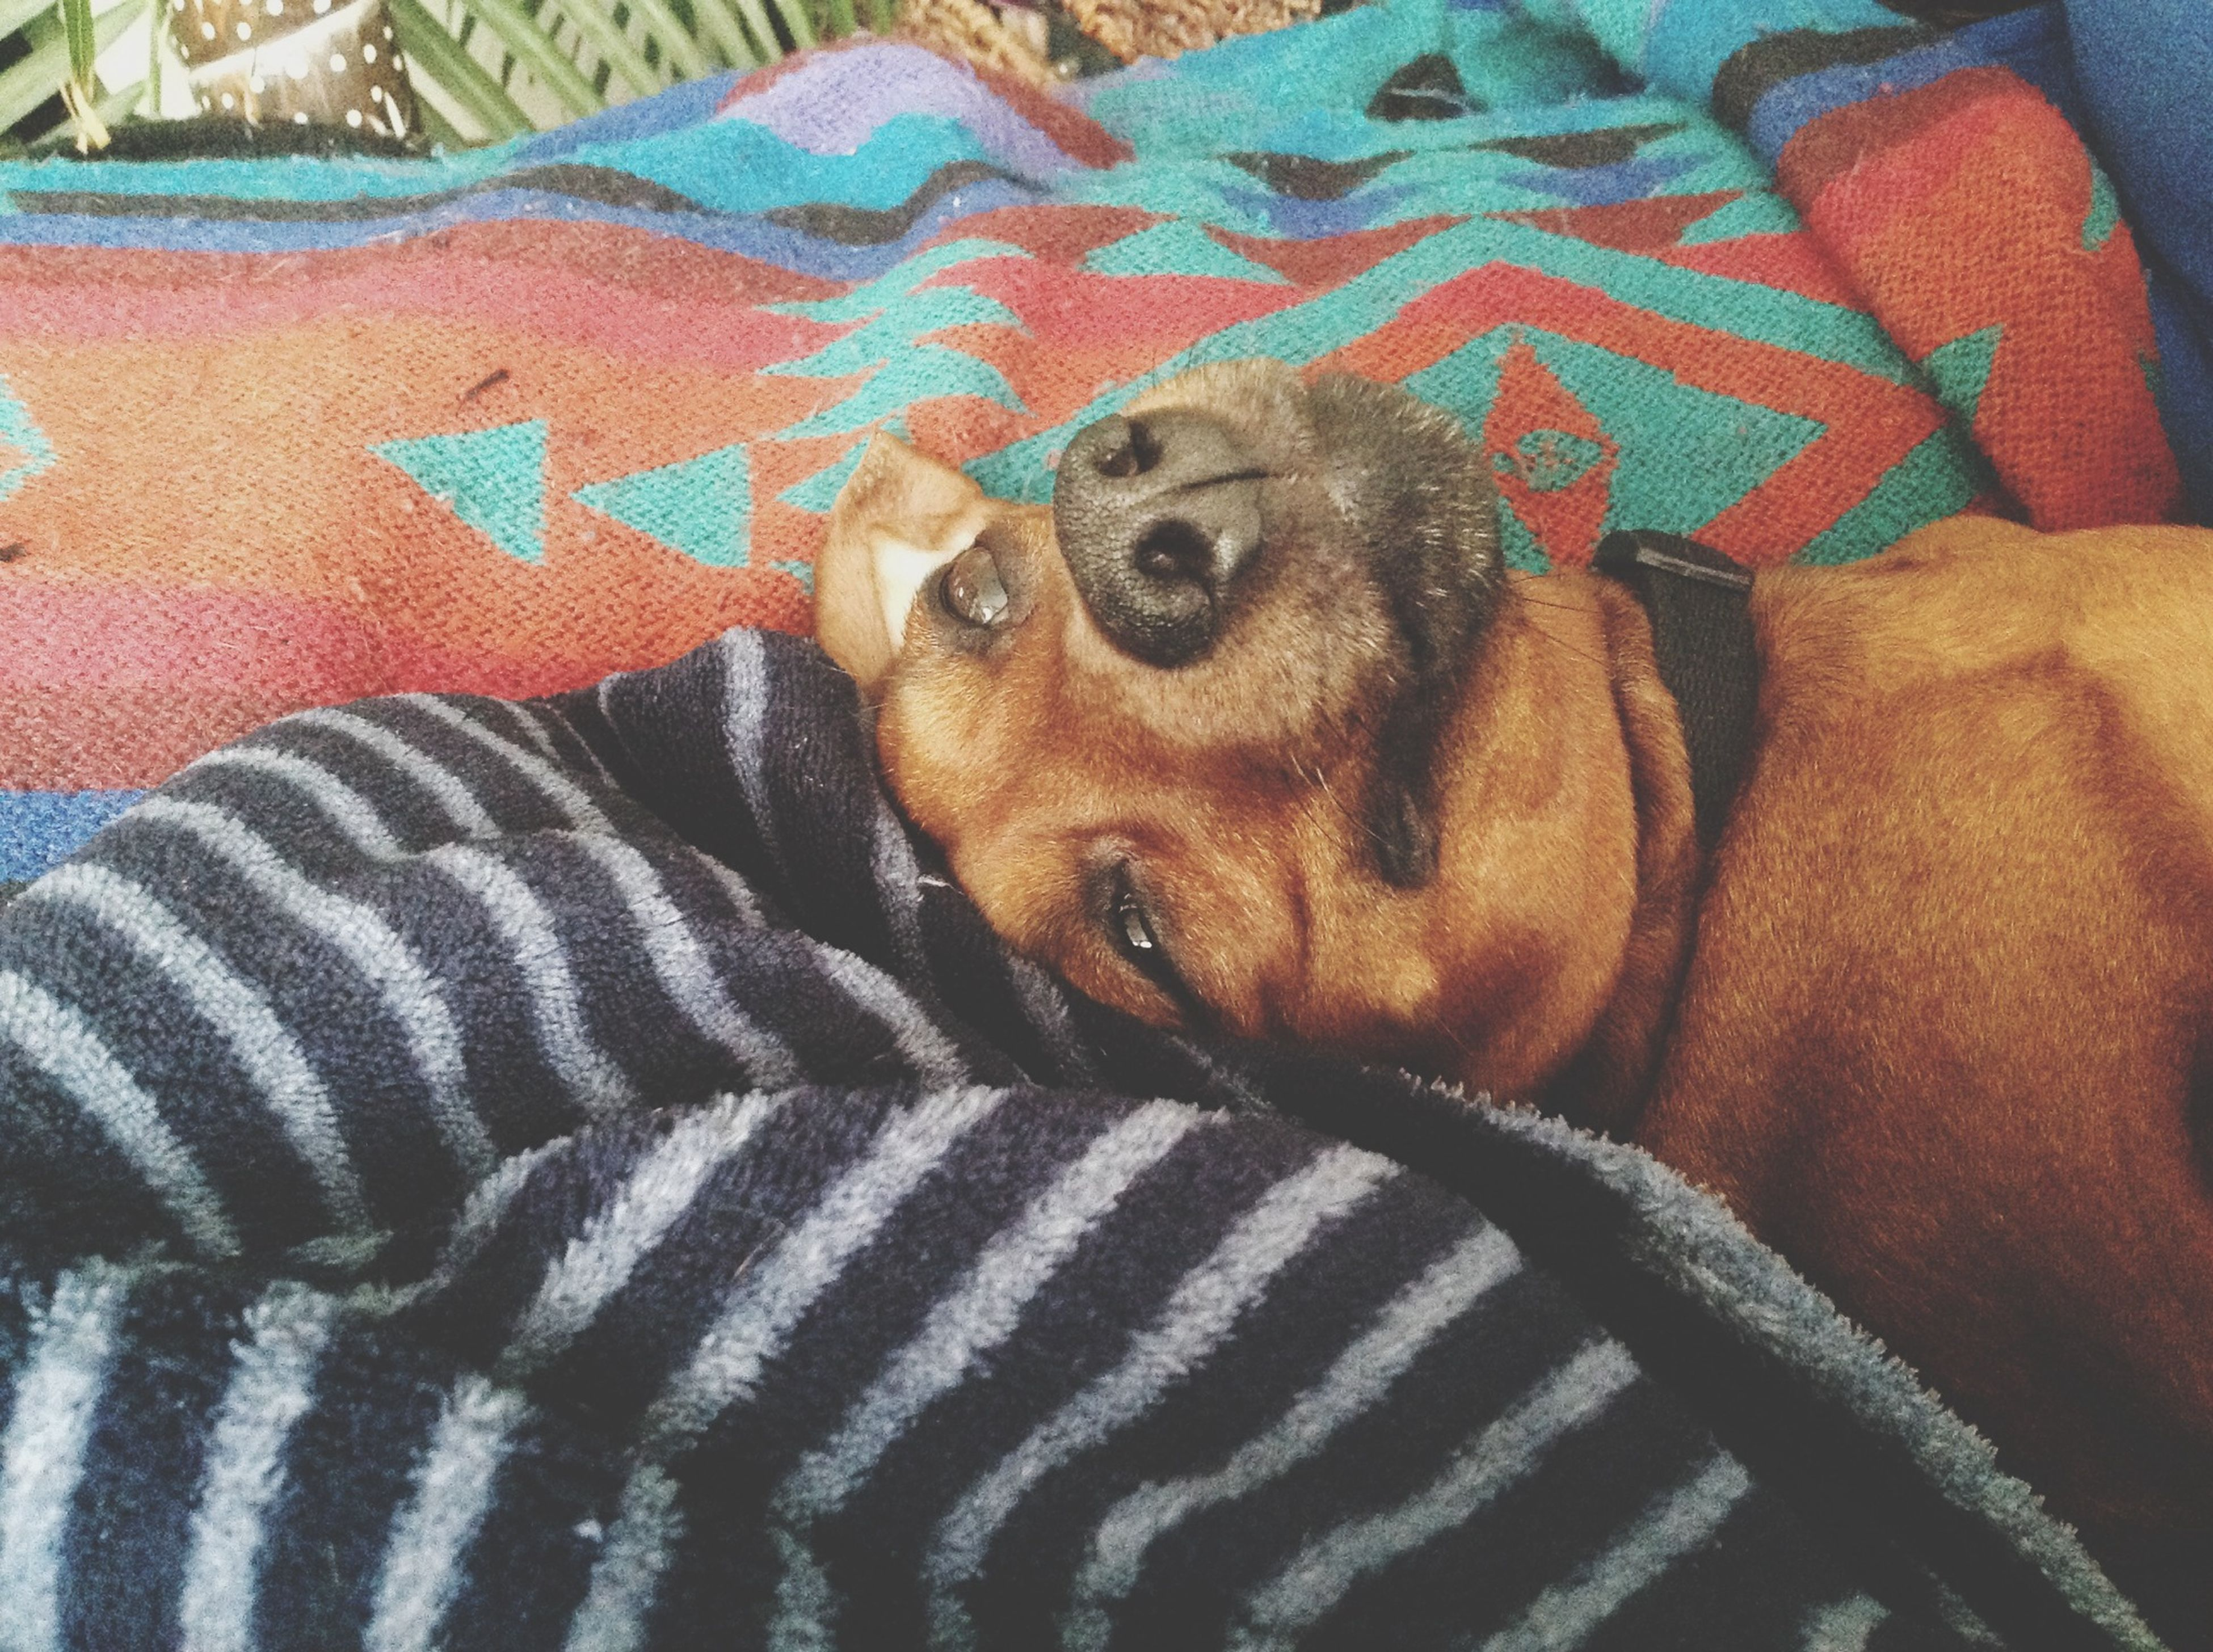 pets, domestic animals, indoors, relaxation, one animal, animal themes, bed, mammal, resting, lying down, dog, sleeping, blanket, sofa, comfortable, close-up, high angle view, home interior, relaxing, sheet